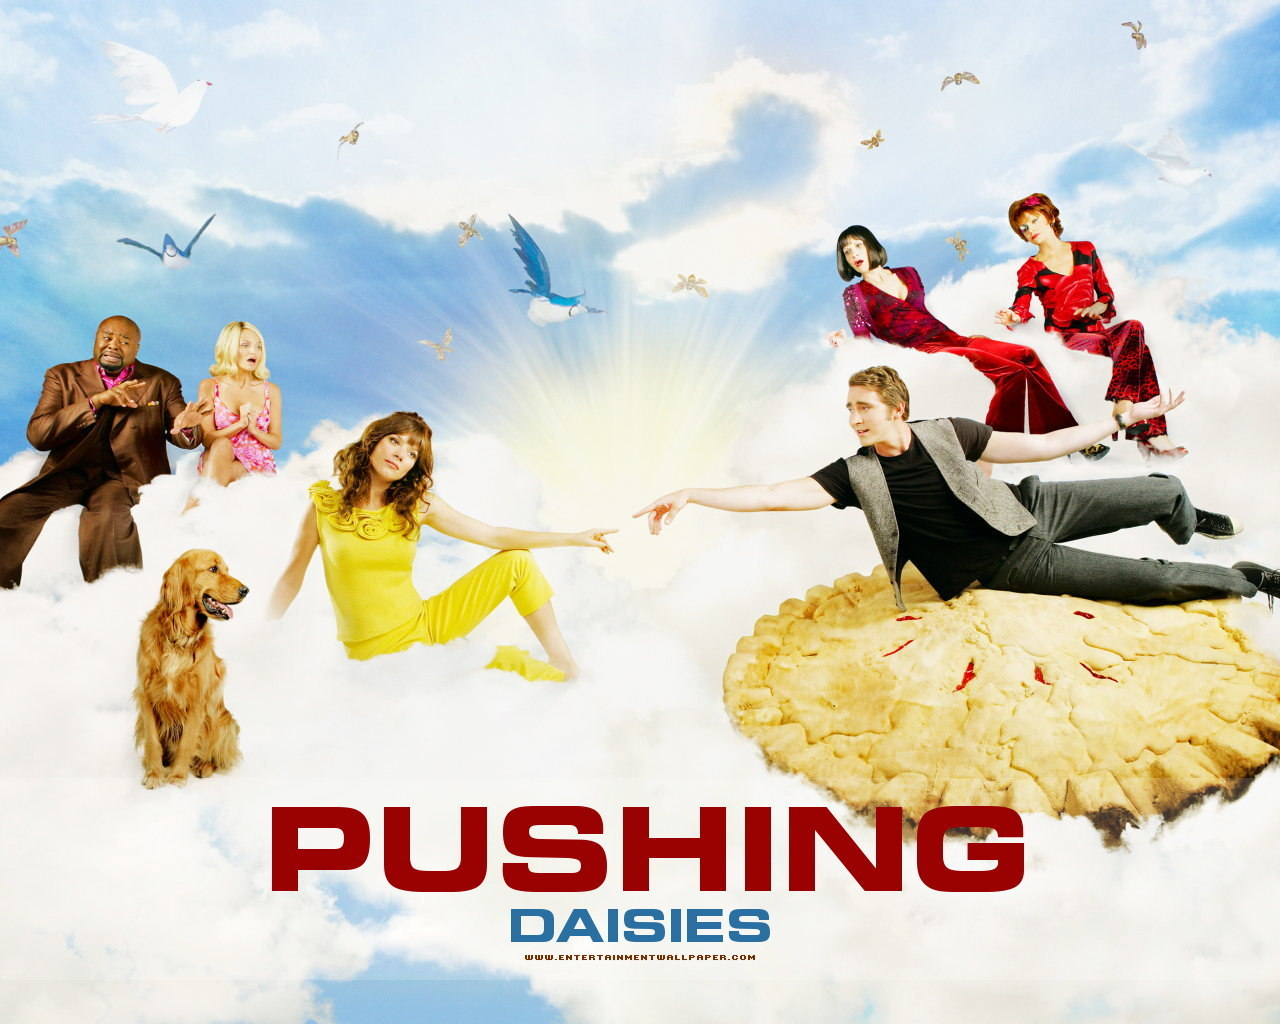 Pushing Daisies pushing daisies 2960749 1280 1024 Three Thoughts for Thursday